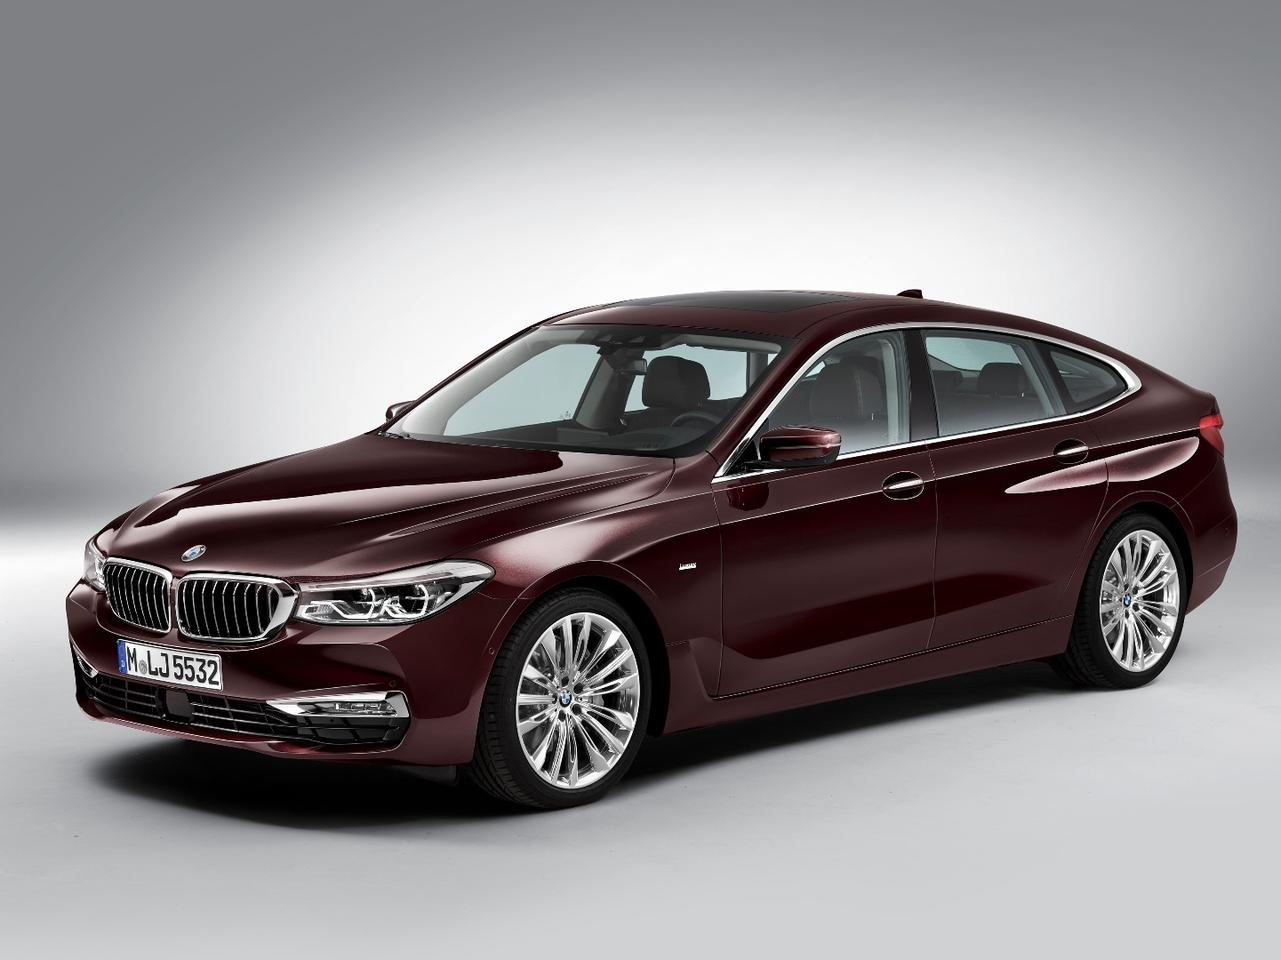 The 6 Series Gran Turismo is designed to blend hatch, wagon and sedan bodies